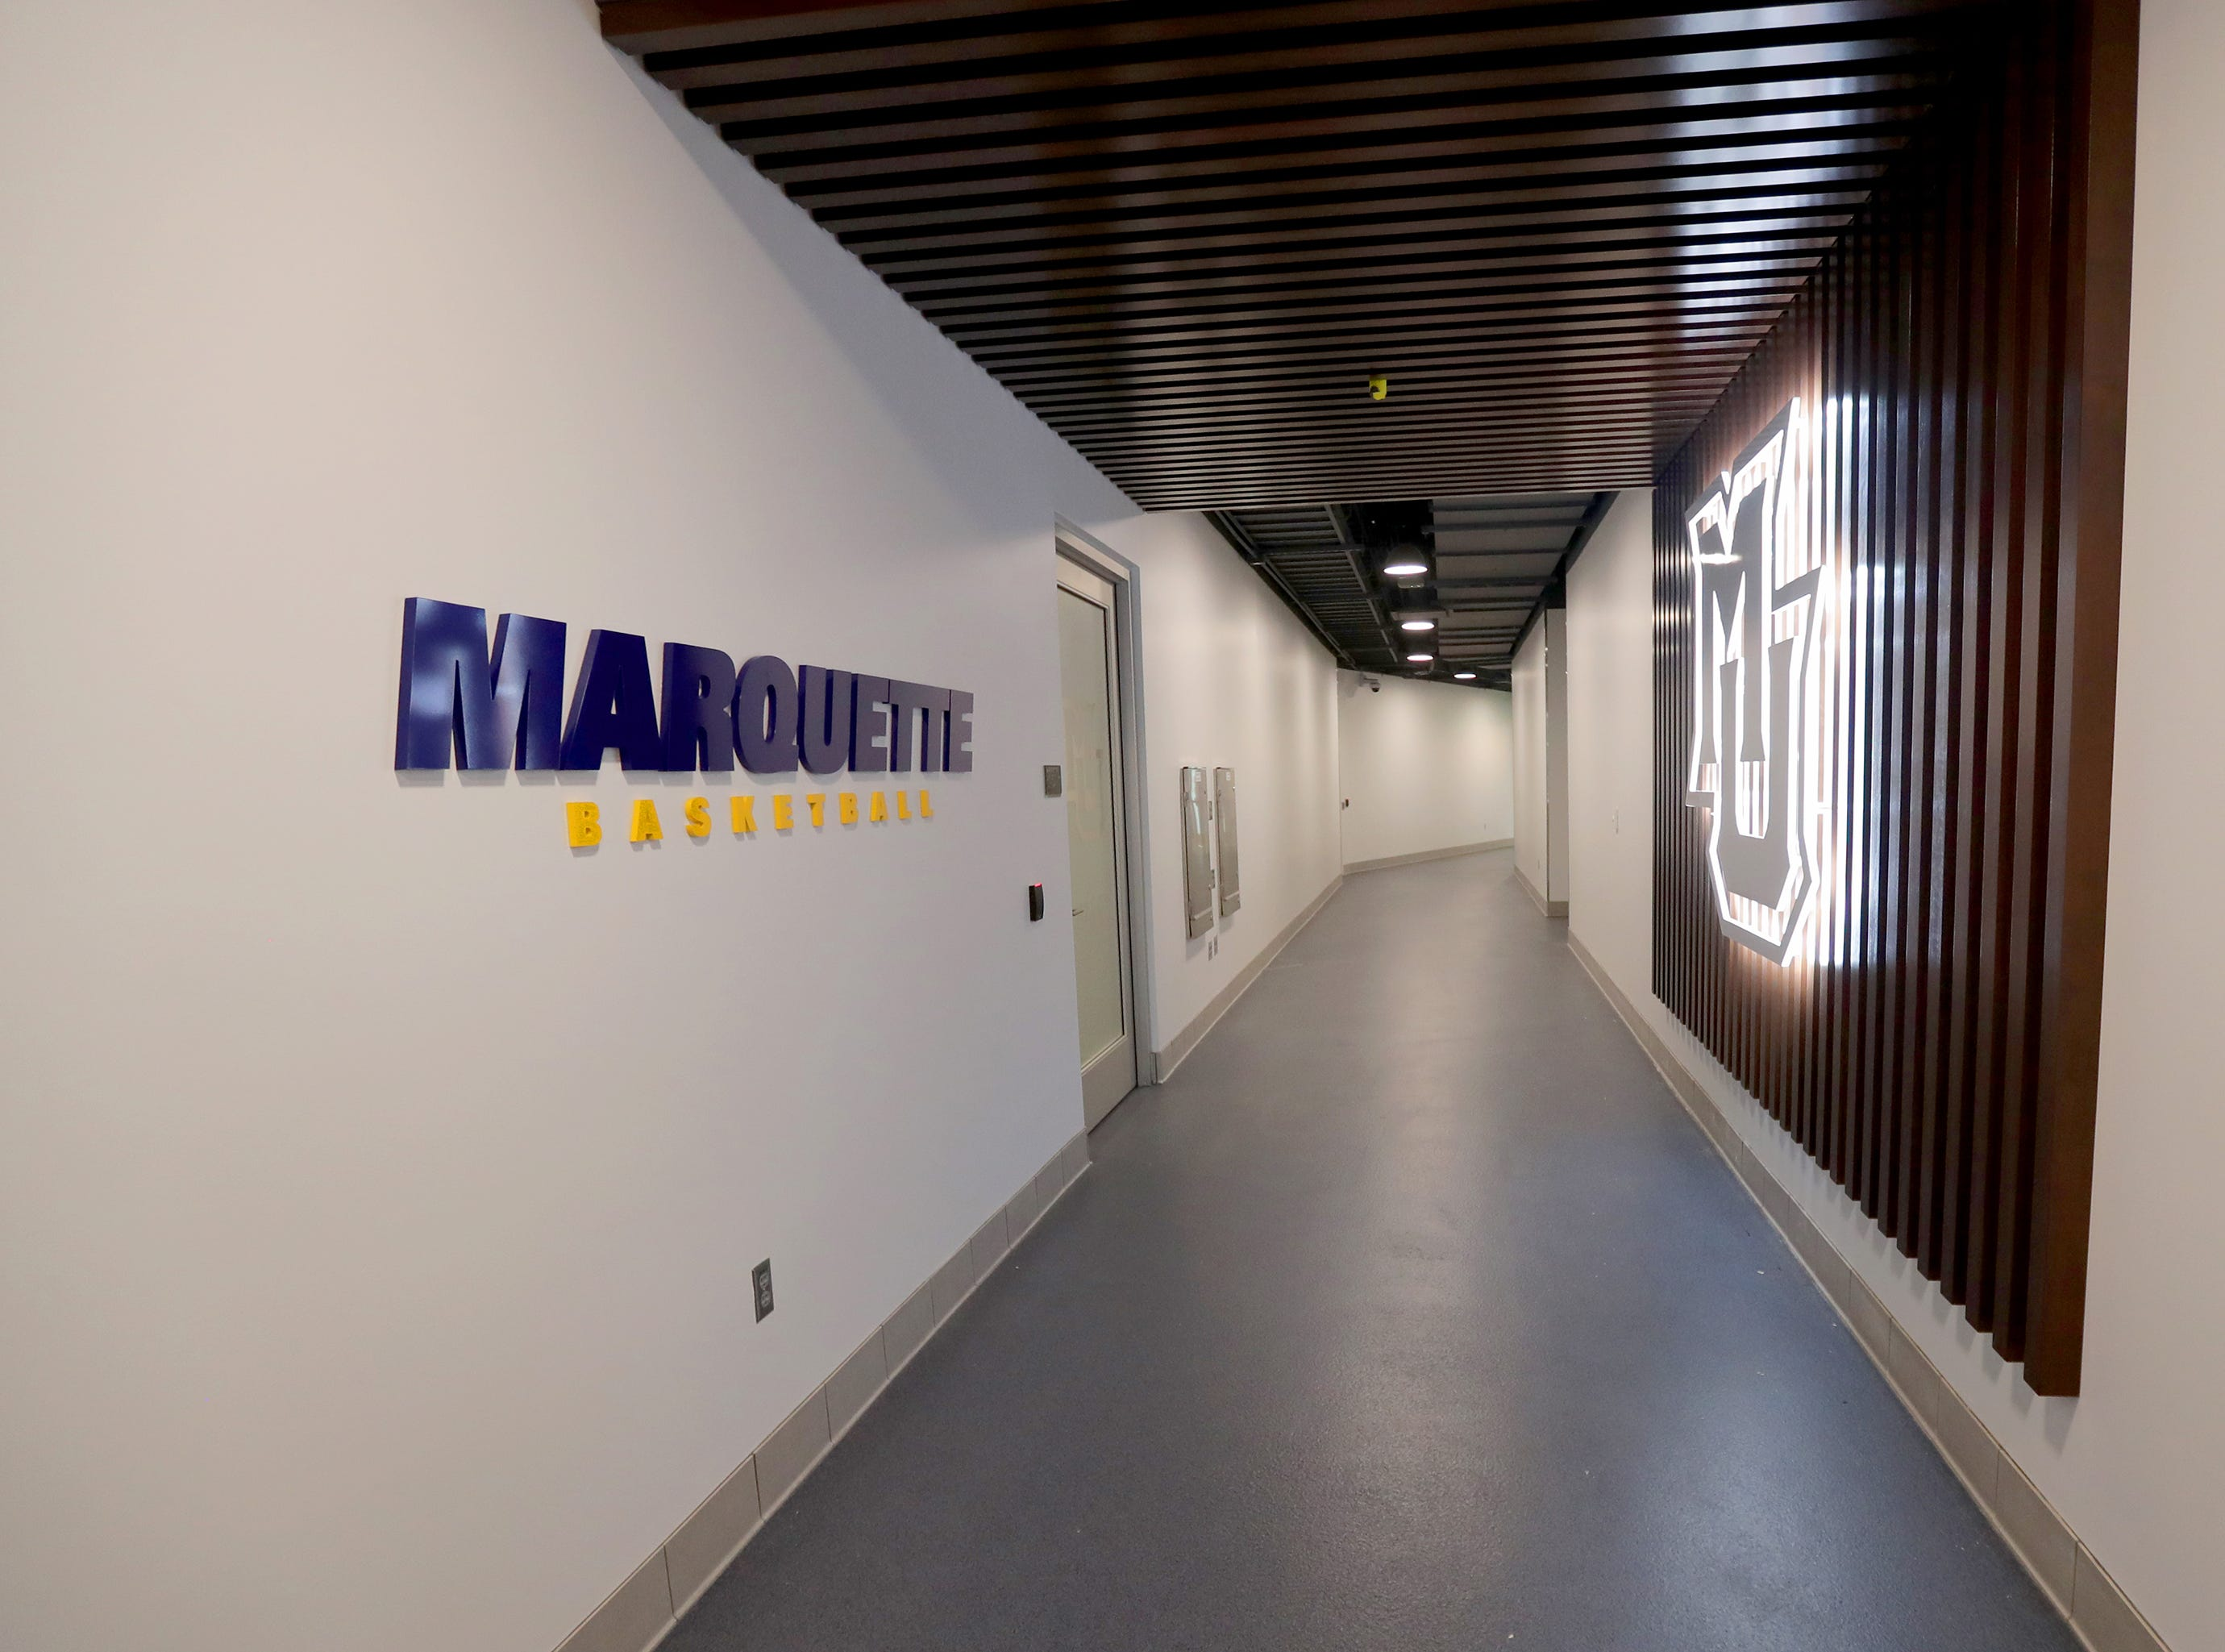 The hallway leading to the entrance to the Marquette locker room. The Marquette mens' basketball team locker room is complete at the new Fiserve Forum, the home of the Milwaukee Bucks. Monday, August 27, 2018.  -  Photo by Mike De Sisti / Milwaukee Journal Sentinel